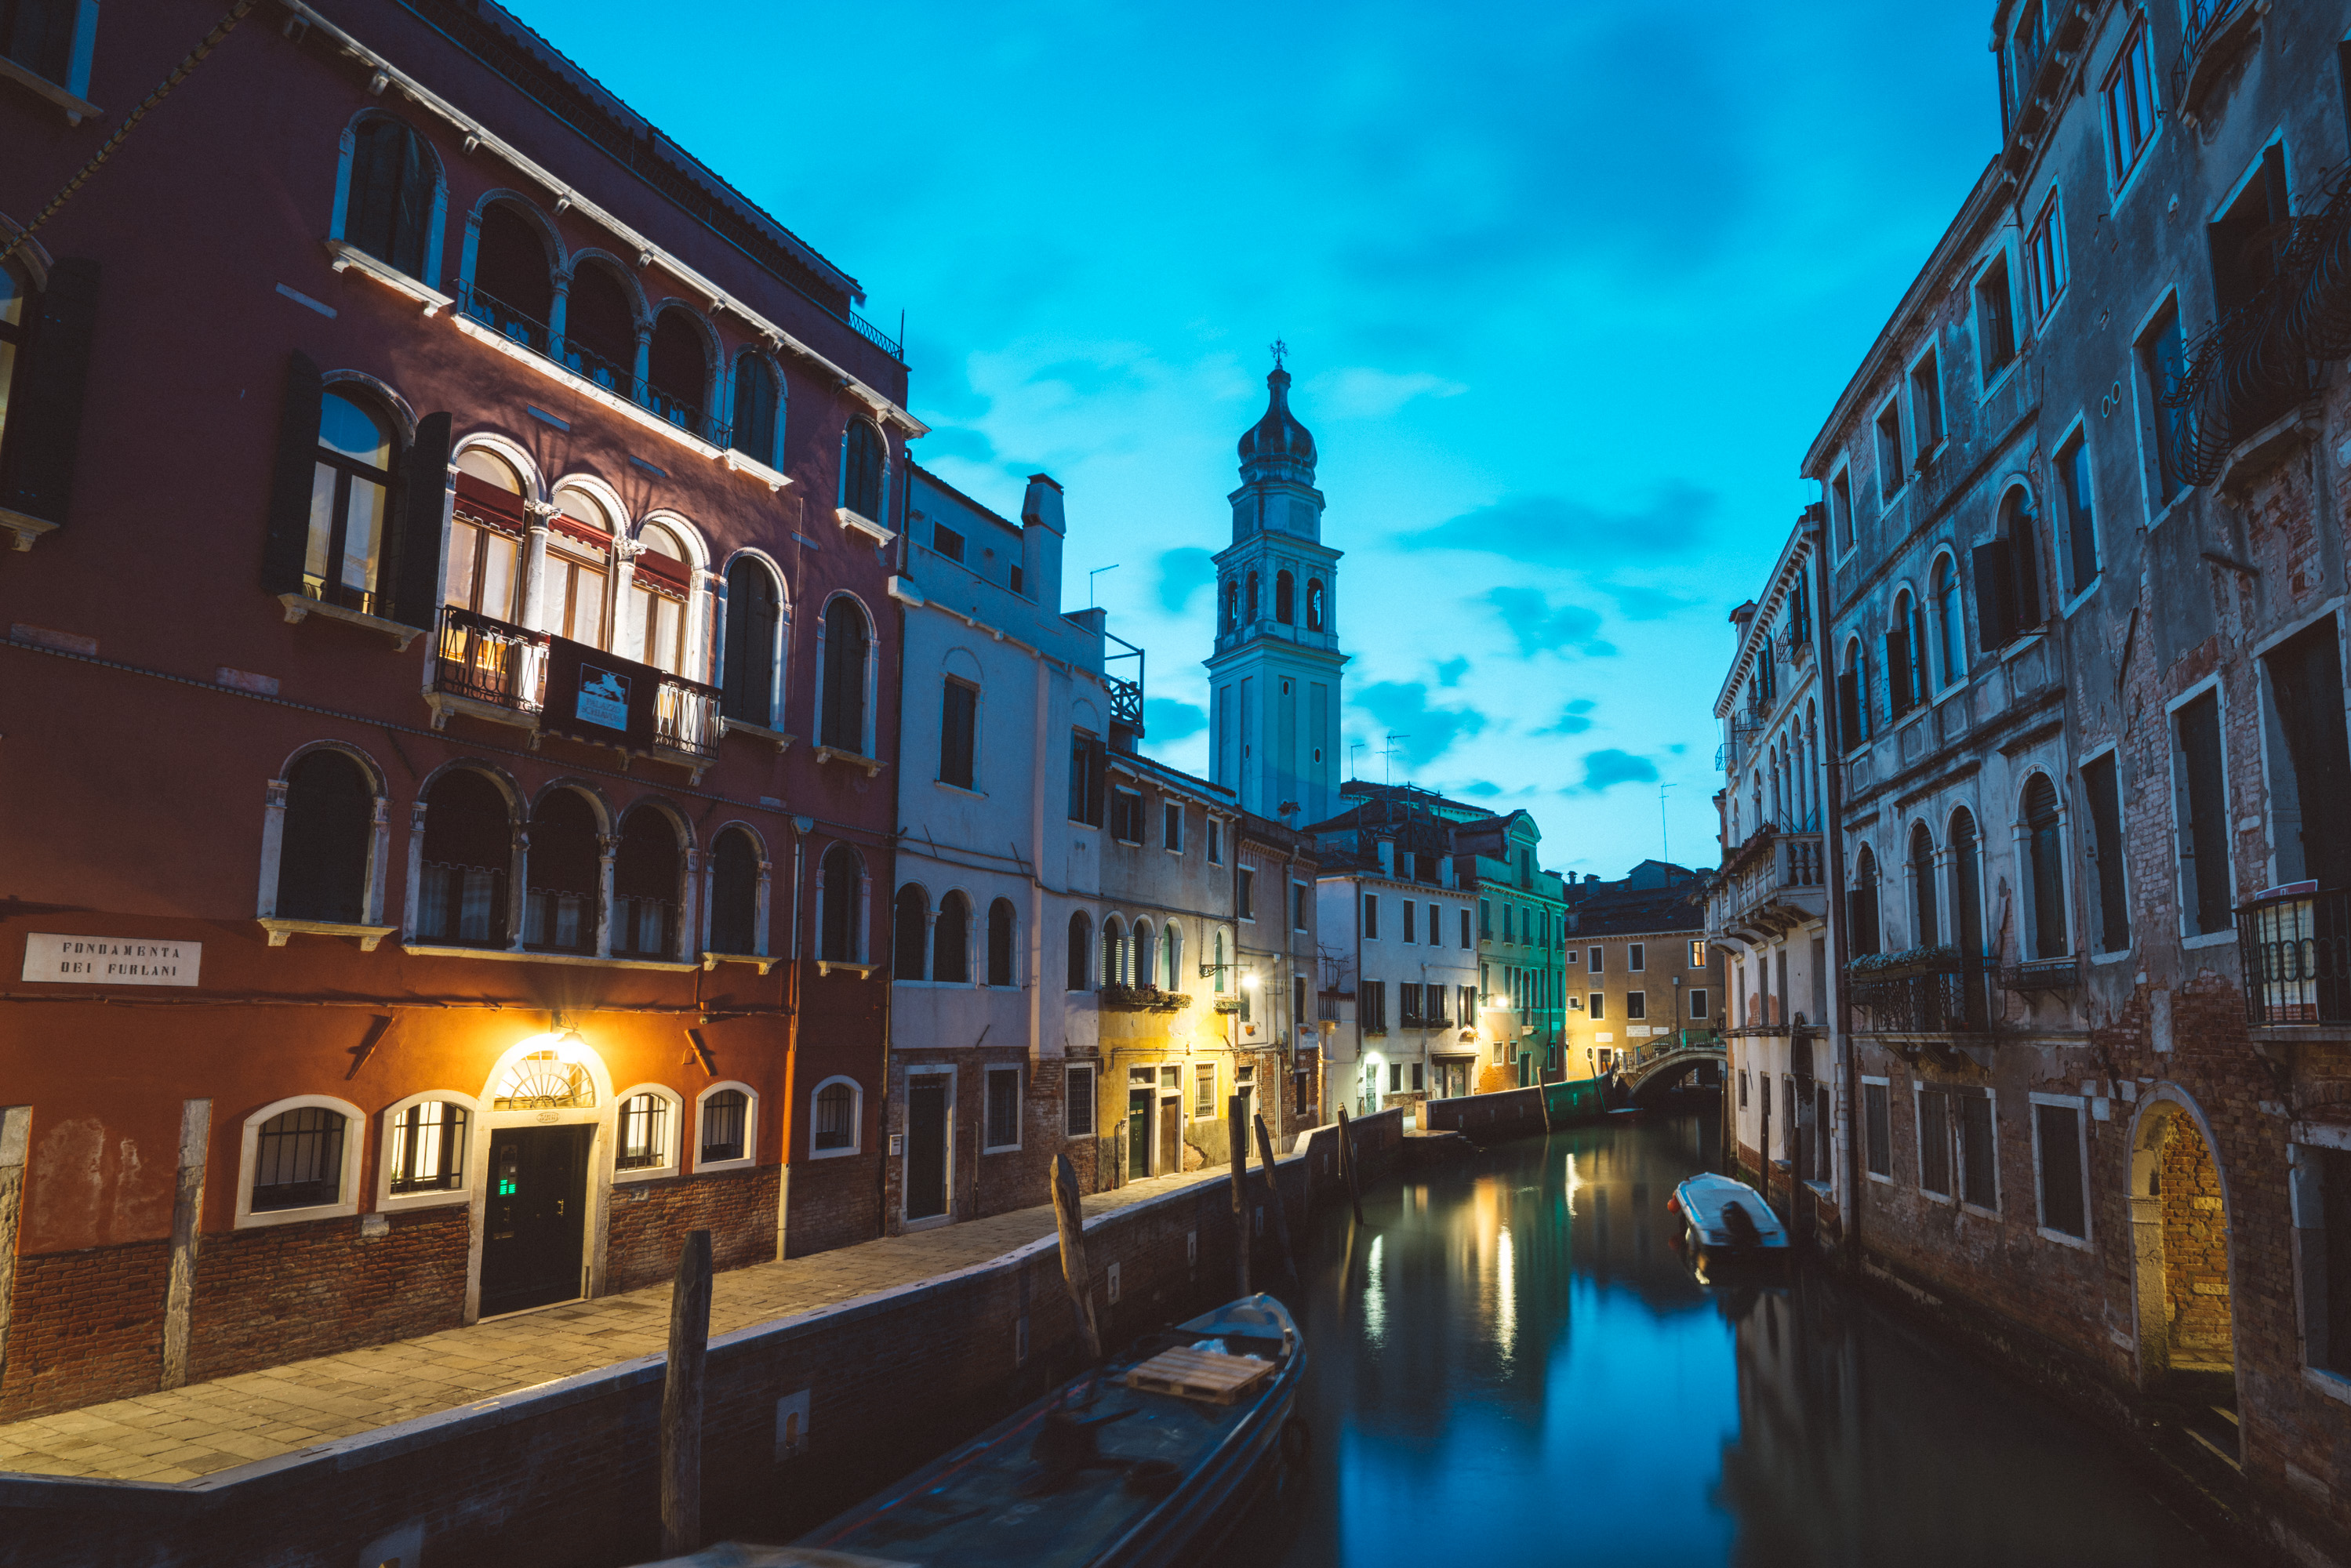 Dawn in Venice Canal [David Tan]